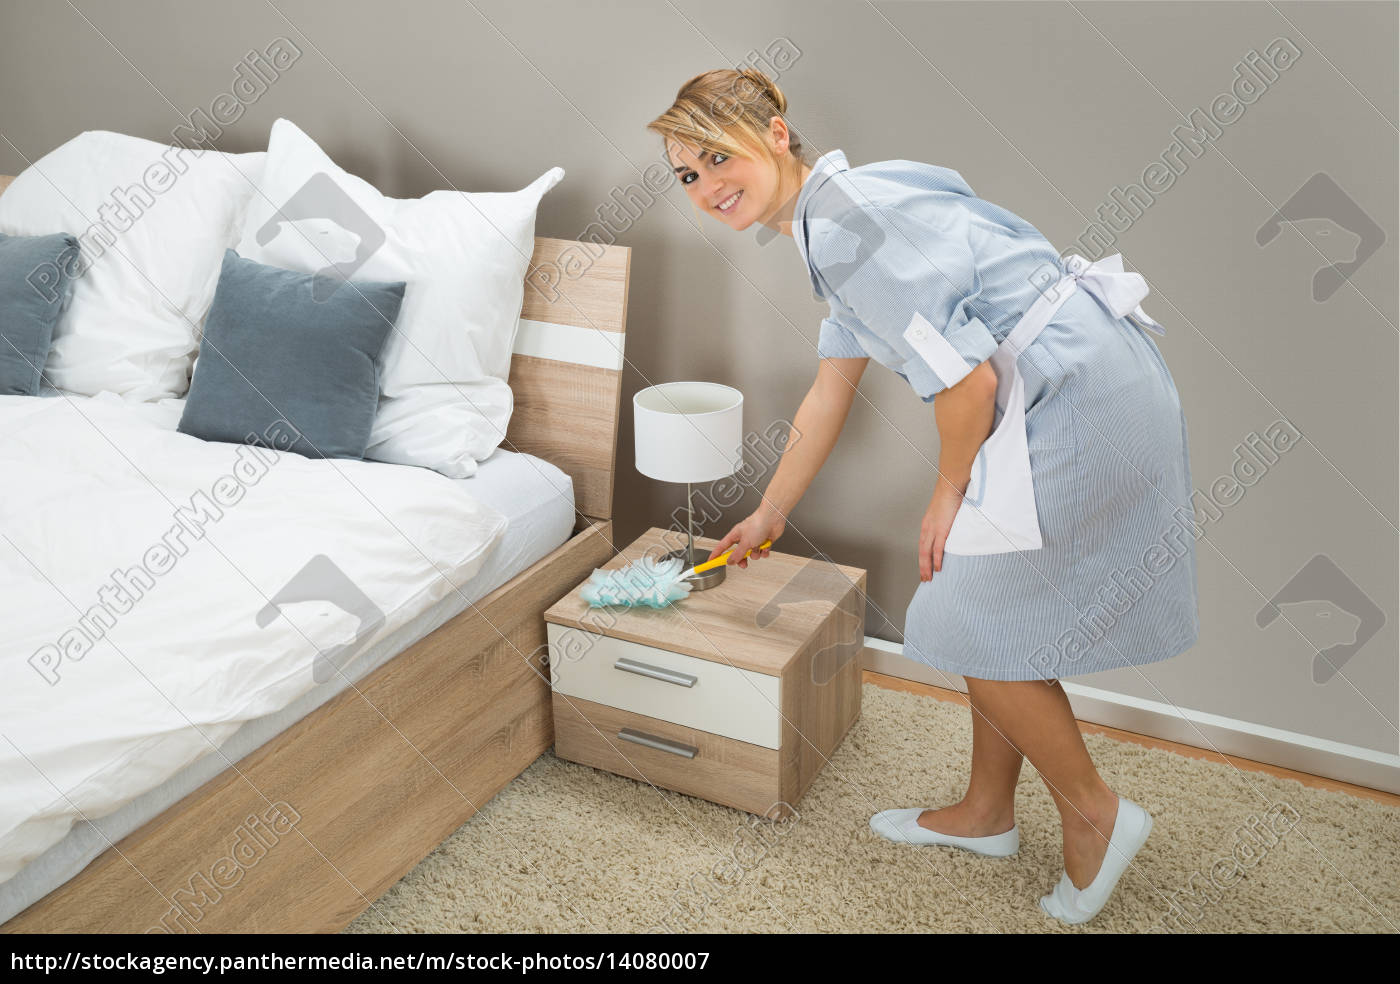 hotel, maid, dusting, with, feather, duster - 14080007